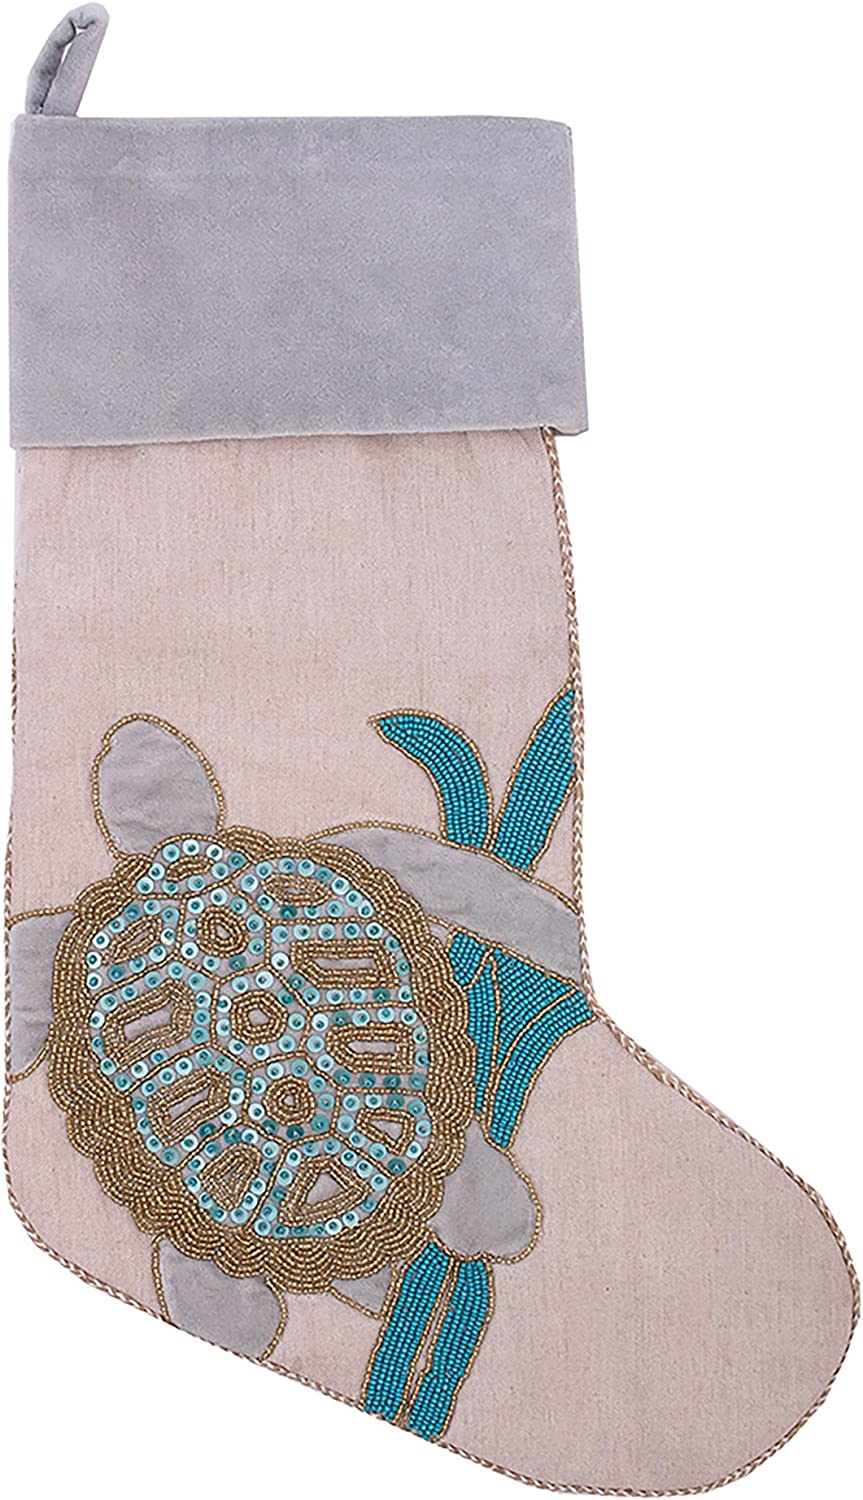 CF Manufacturer regenerated product Home Holiday Serenity Turtle Blue Stocking favorite